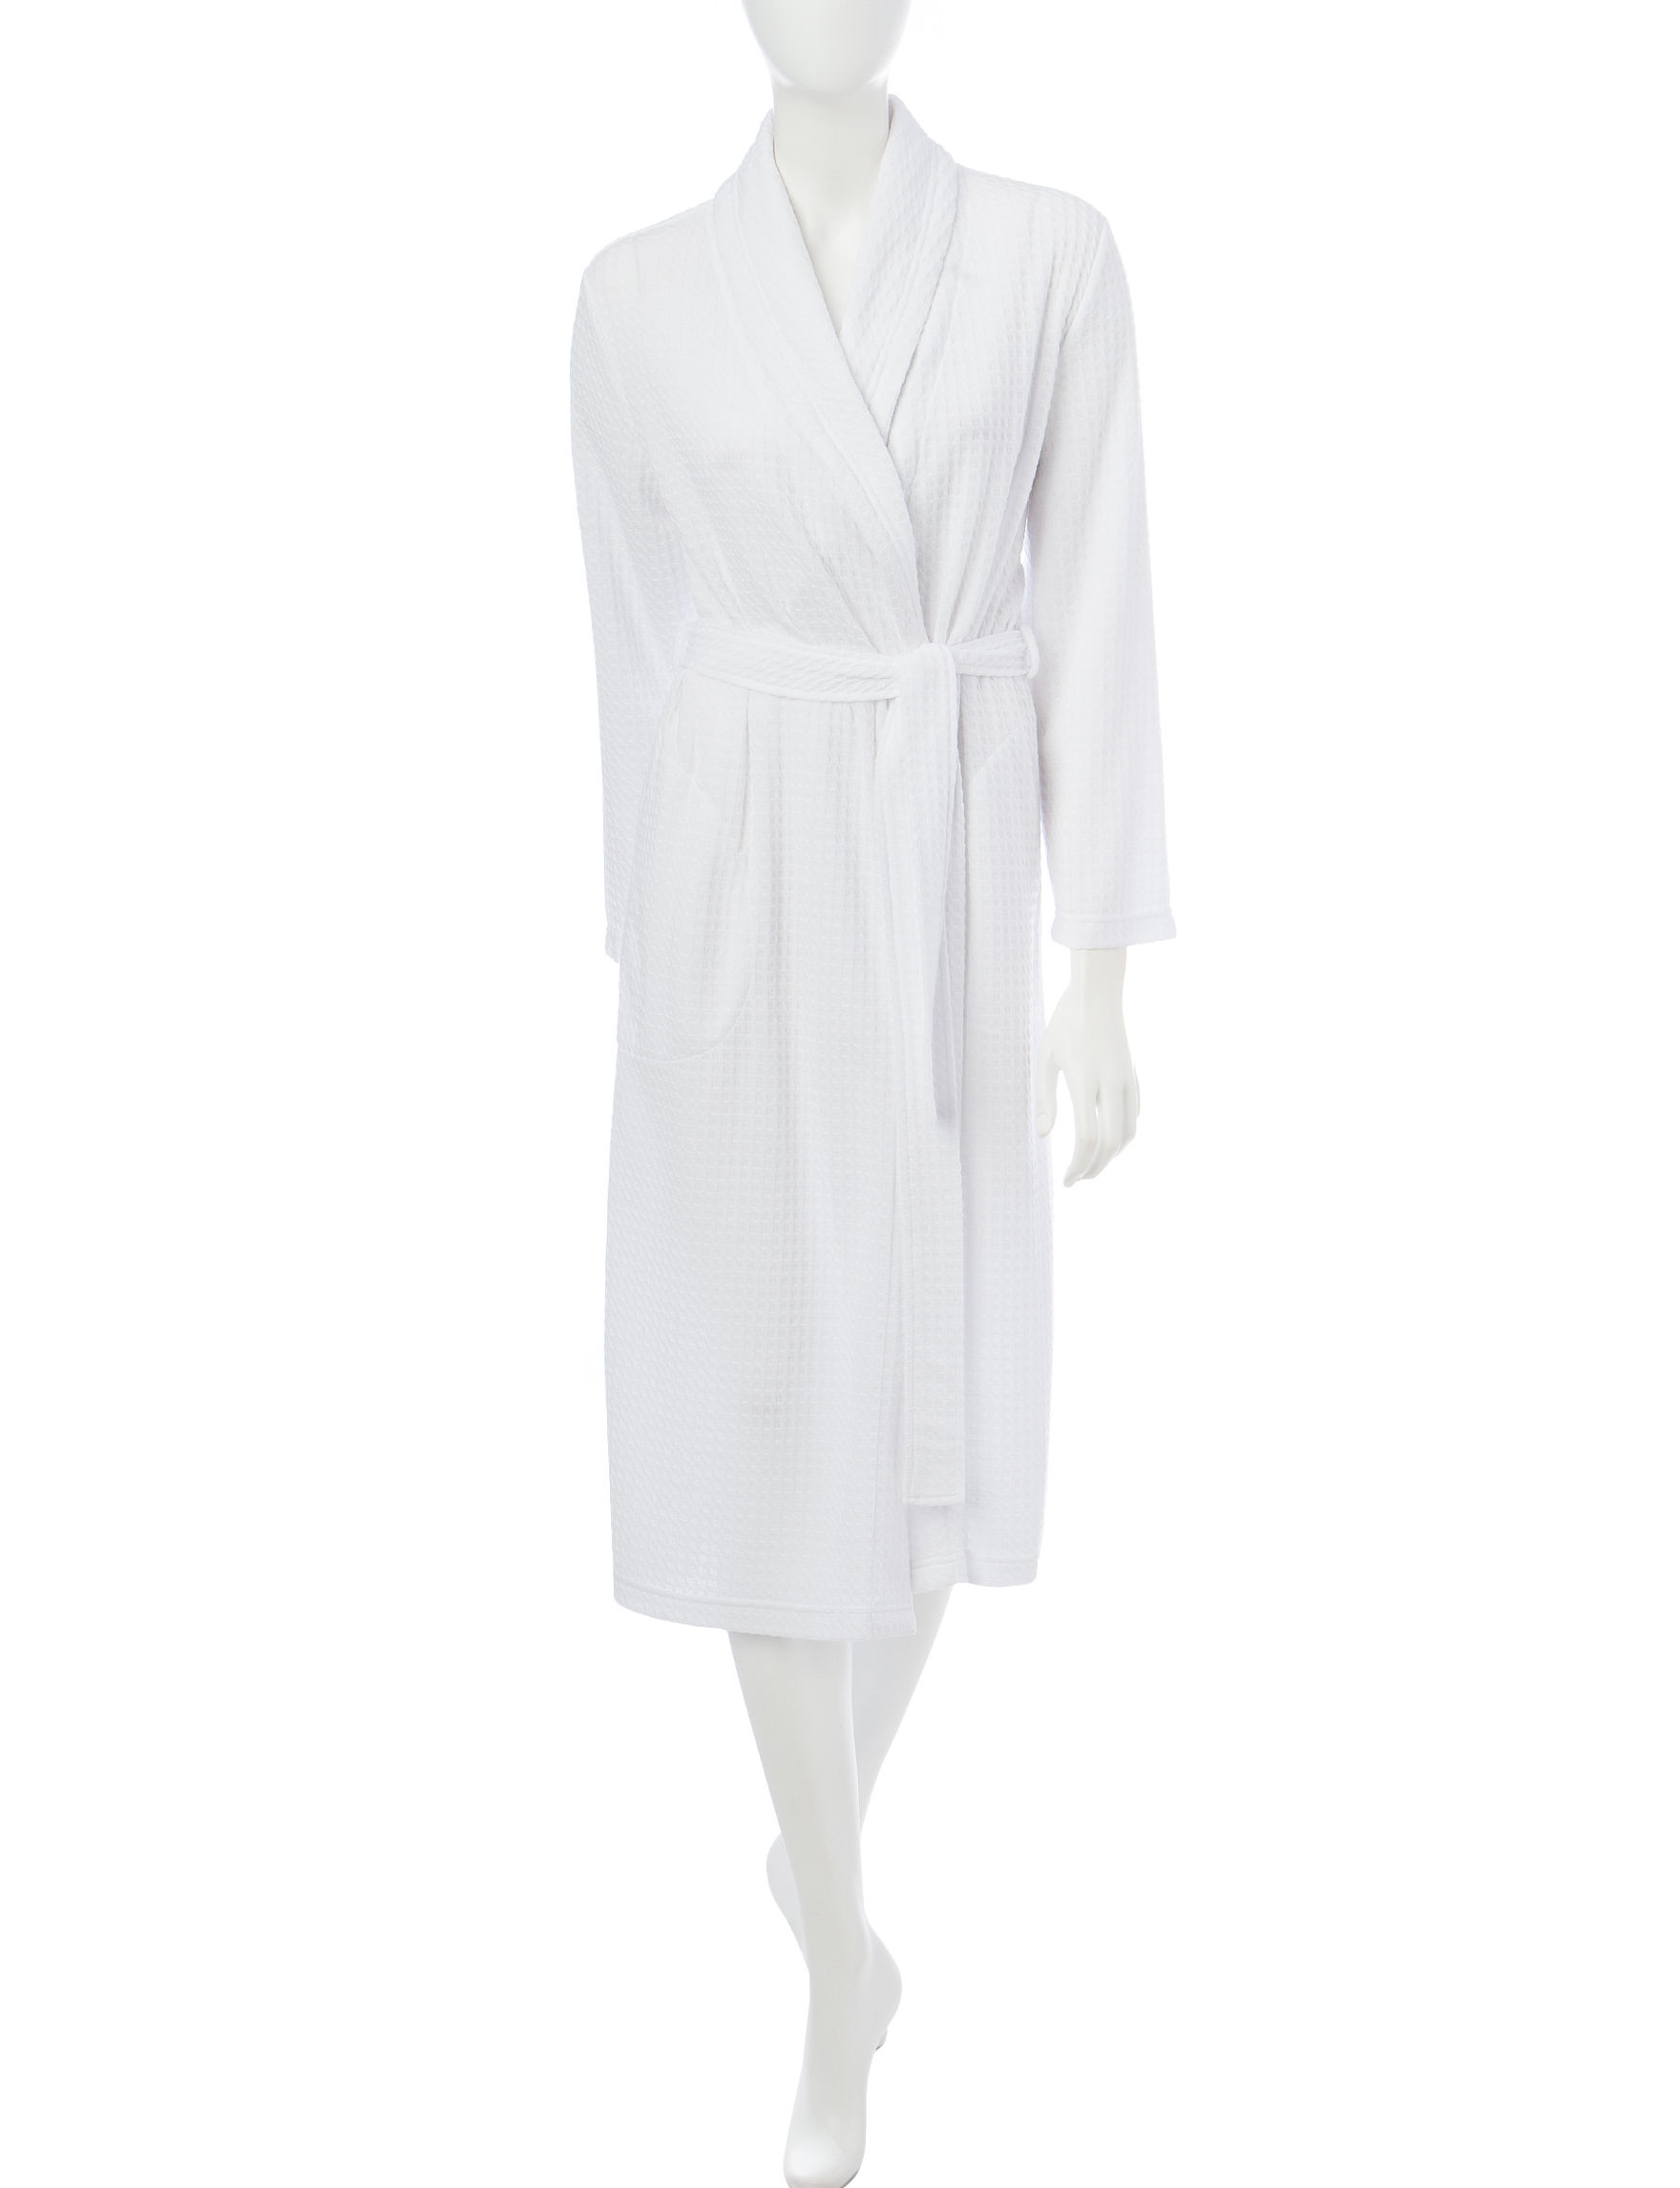 Jasmine Rose White Robes, Wraps & Dusters